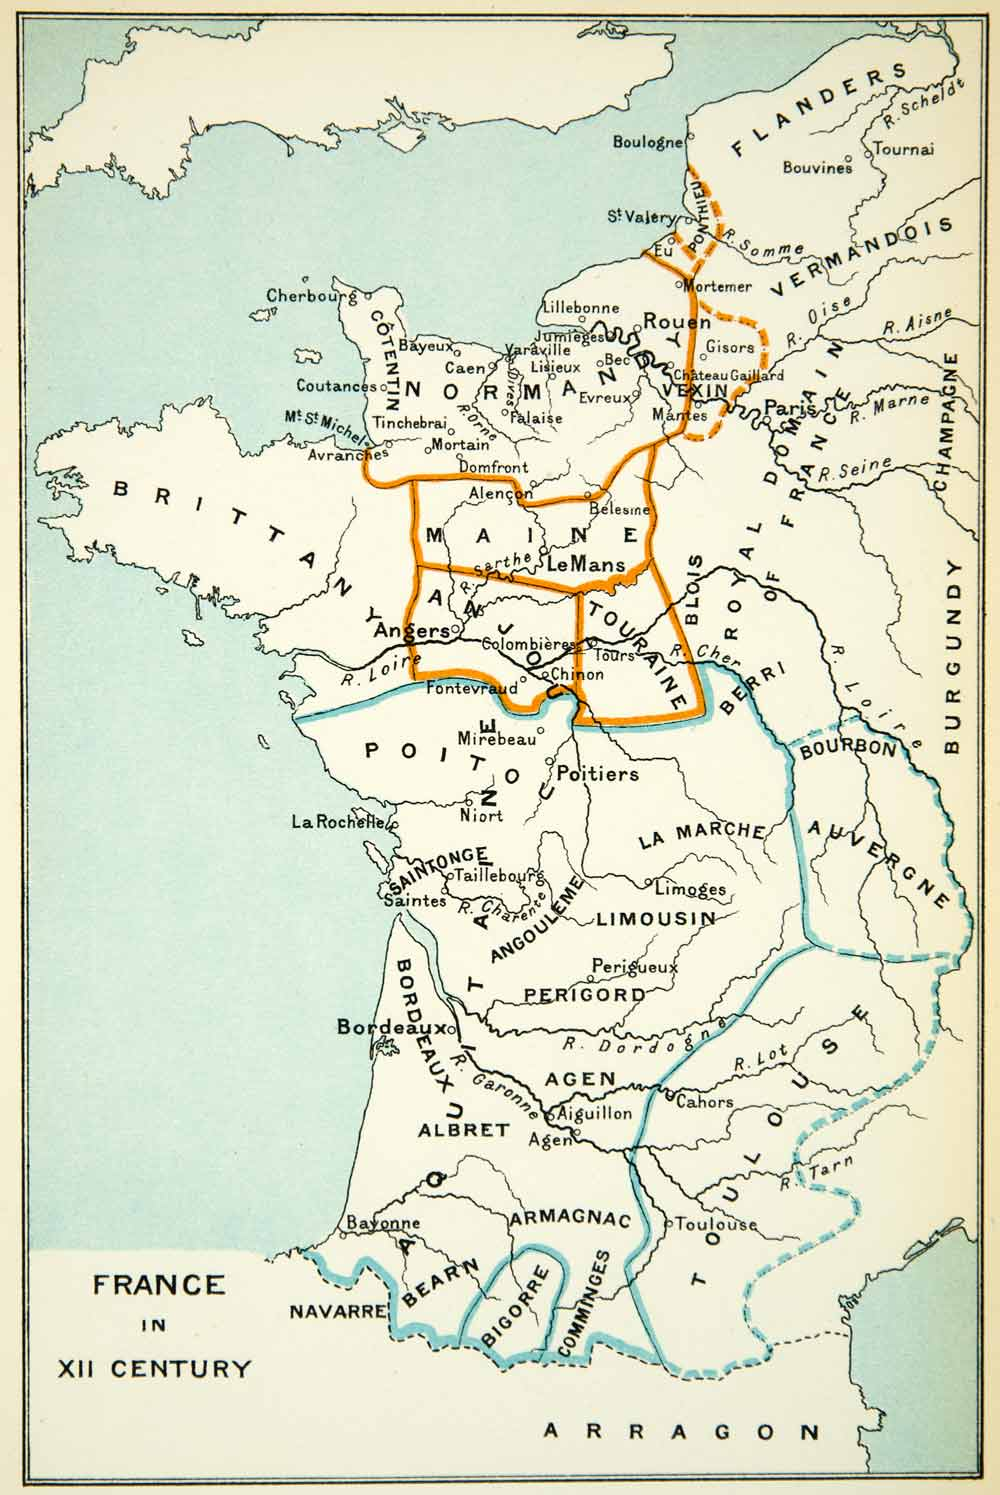 Map Of France Toulouse.1904 Offset Lithograph Map France 12th Century Brittany Toulouse Maine Xeoa1